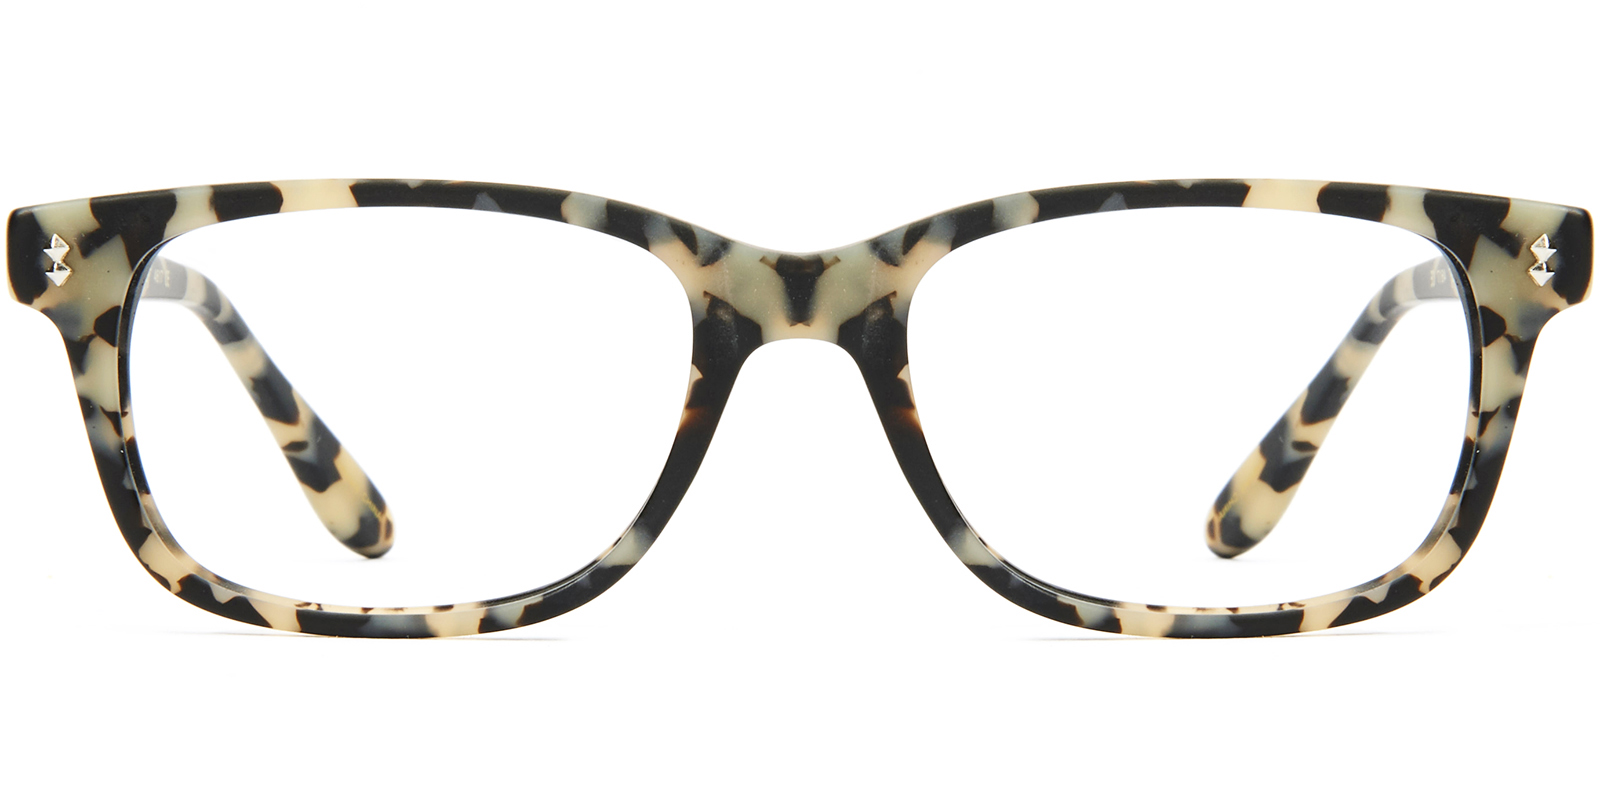 Ernest Hemingway Eyeglass Frames 4617 : Ernest Hemingway glasses 4617 Direct Sight